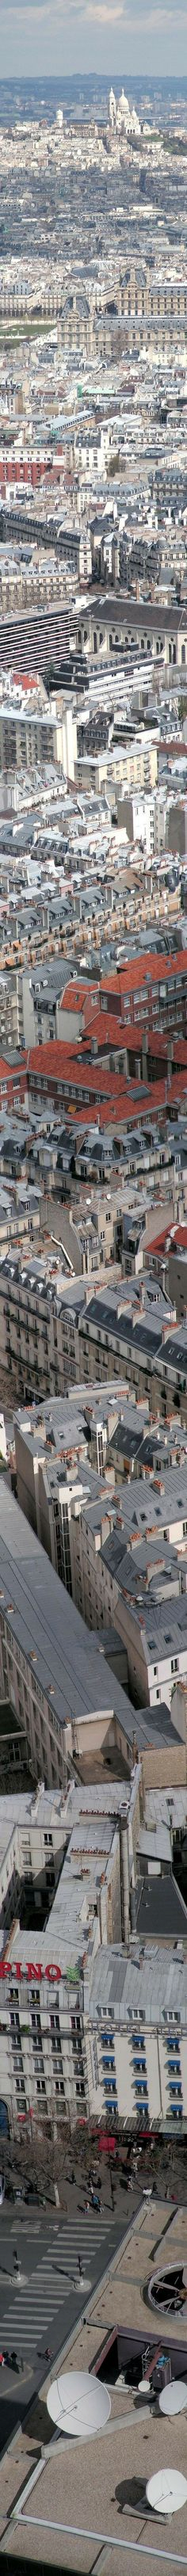 Paris from top to bottom.  I LOVE THIS CITY!  I can't wait to go back.